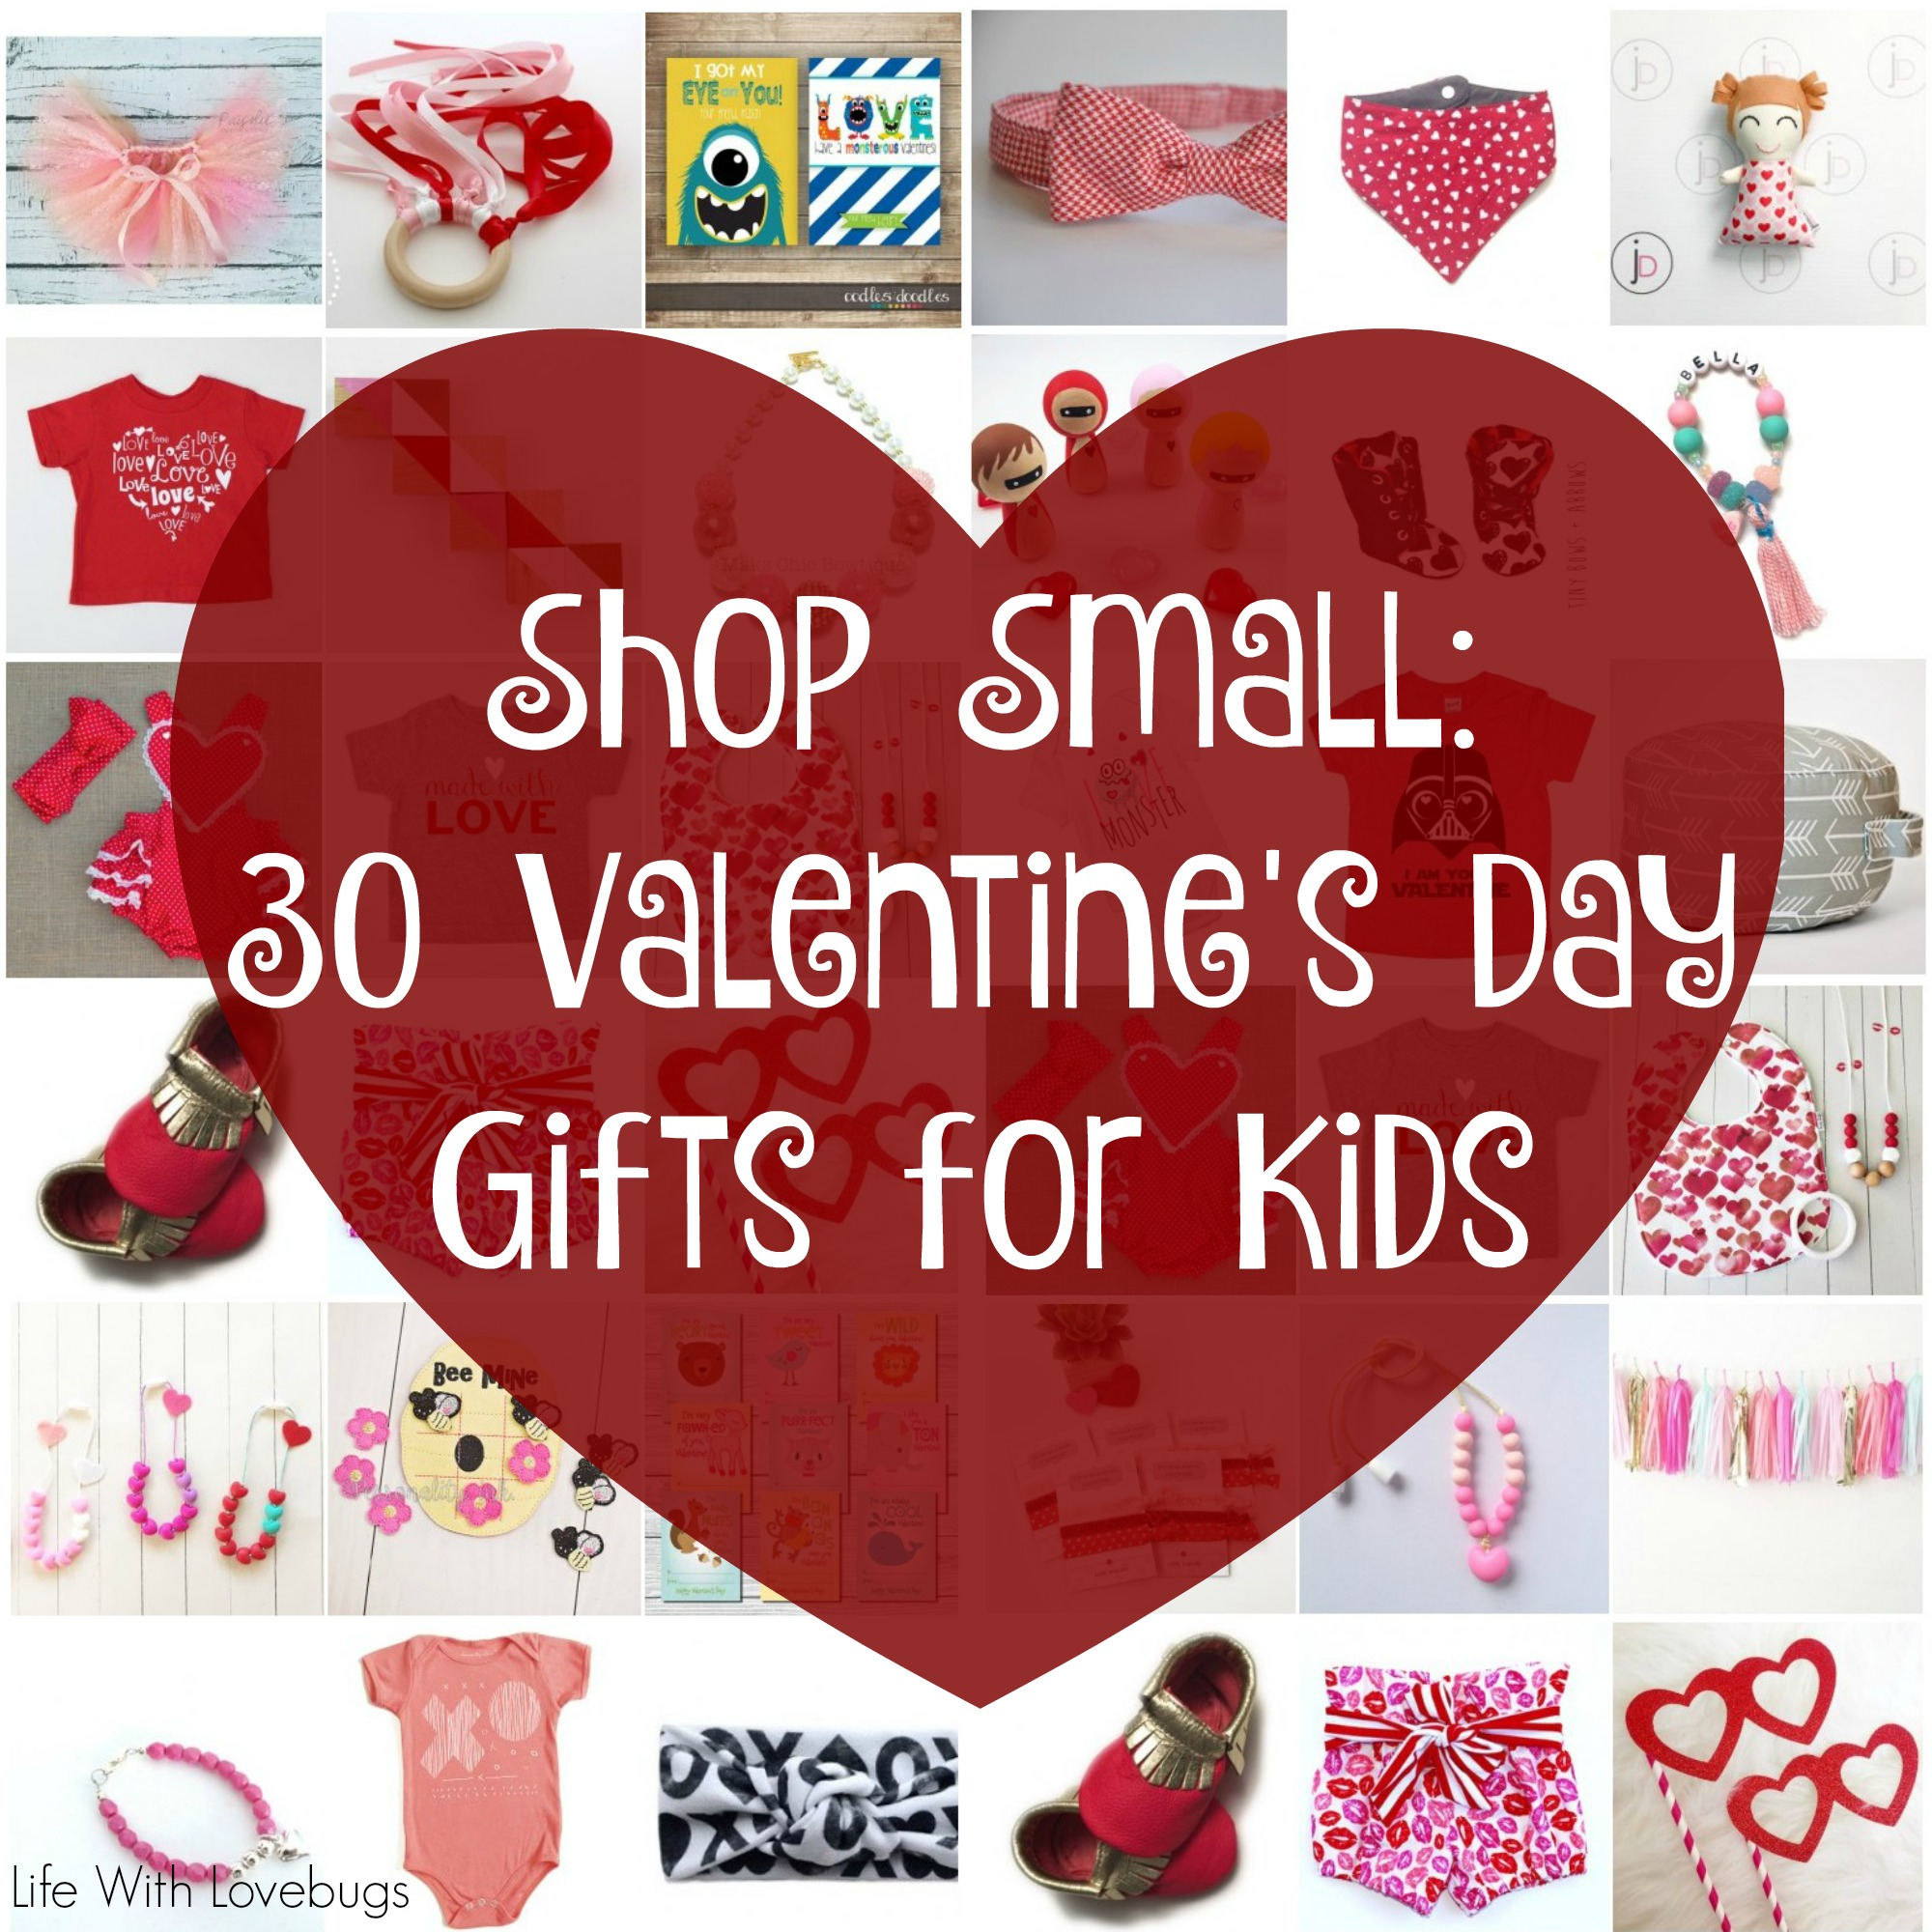 Shop small 30 valentines day gifts for kids life with for Small valentines gifts for him